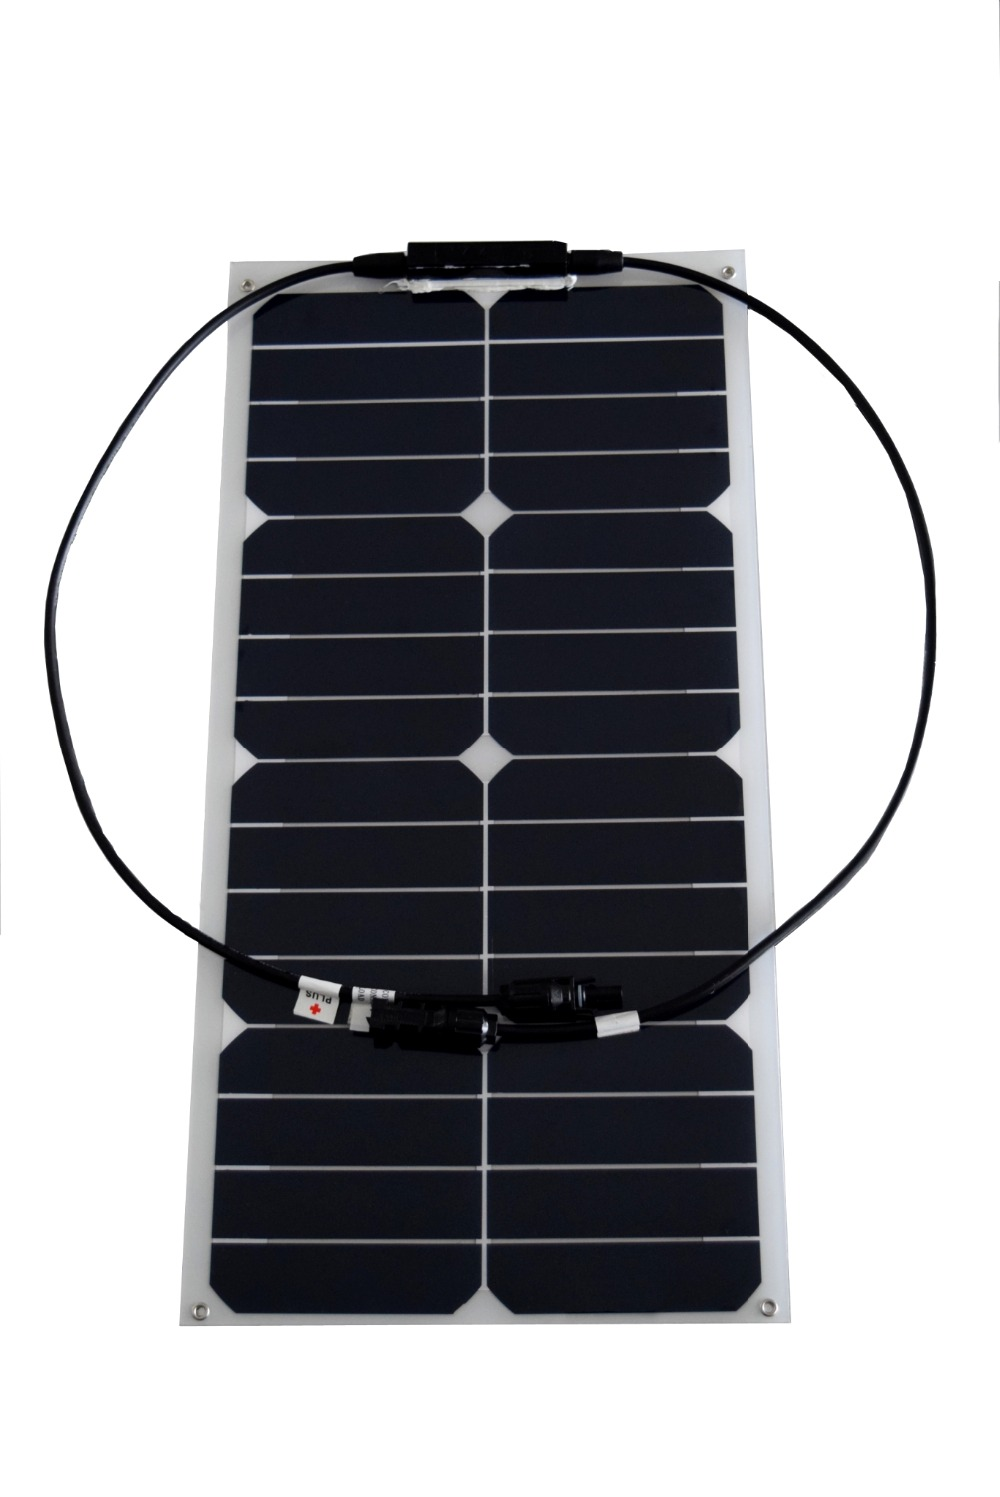 Solarparts 1x 25W flexible solar panel mono module for 12V battery with USA solar cell with MC4 connector cell DIY kits charger(China (Mainland))